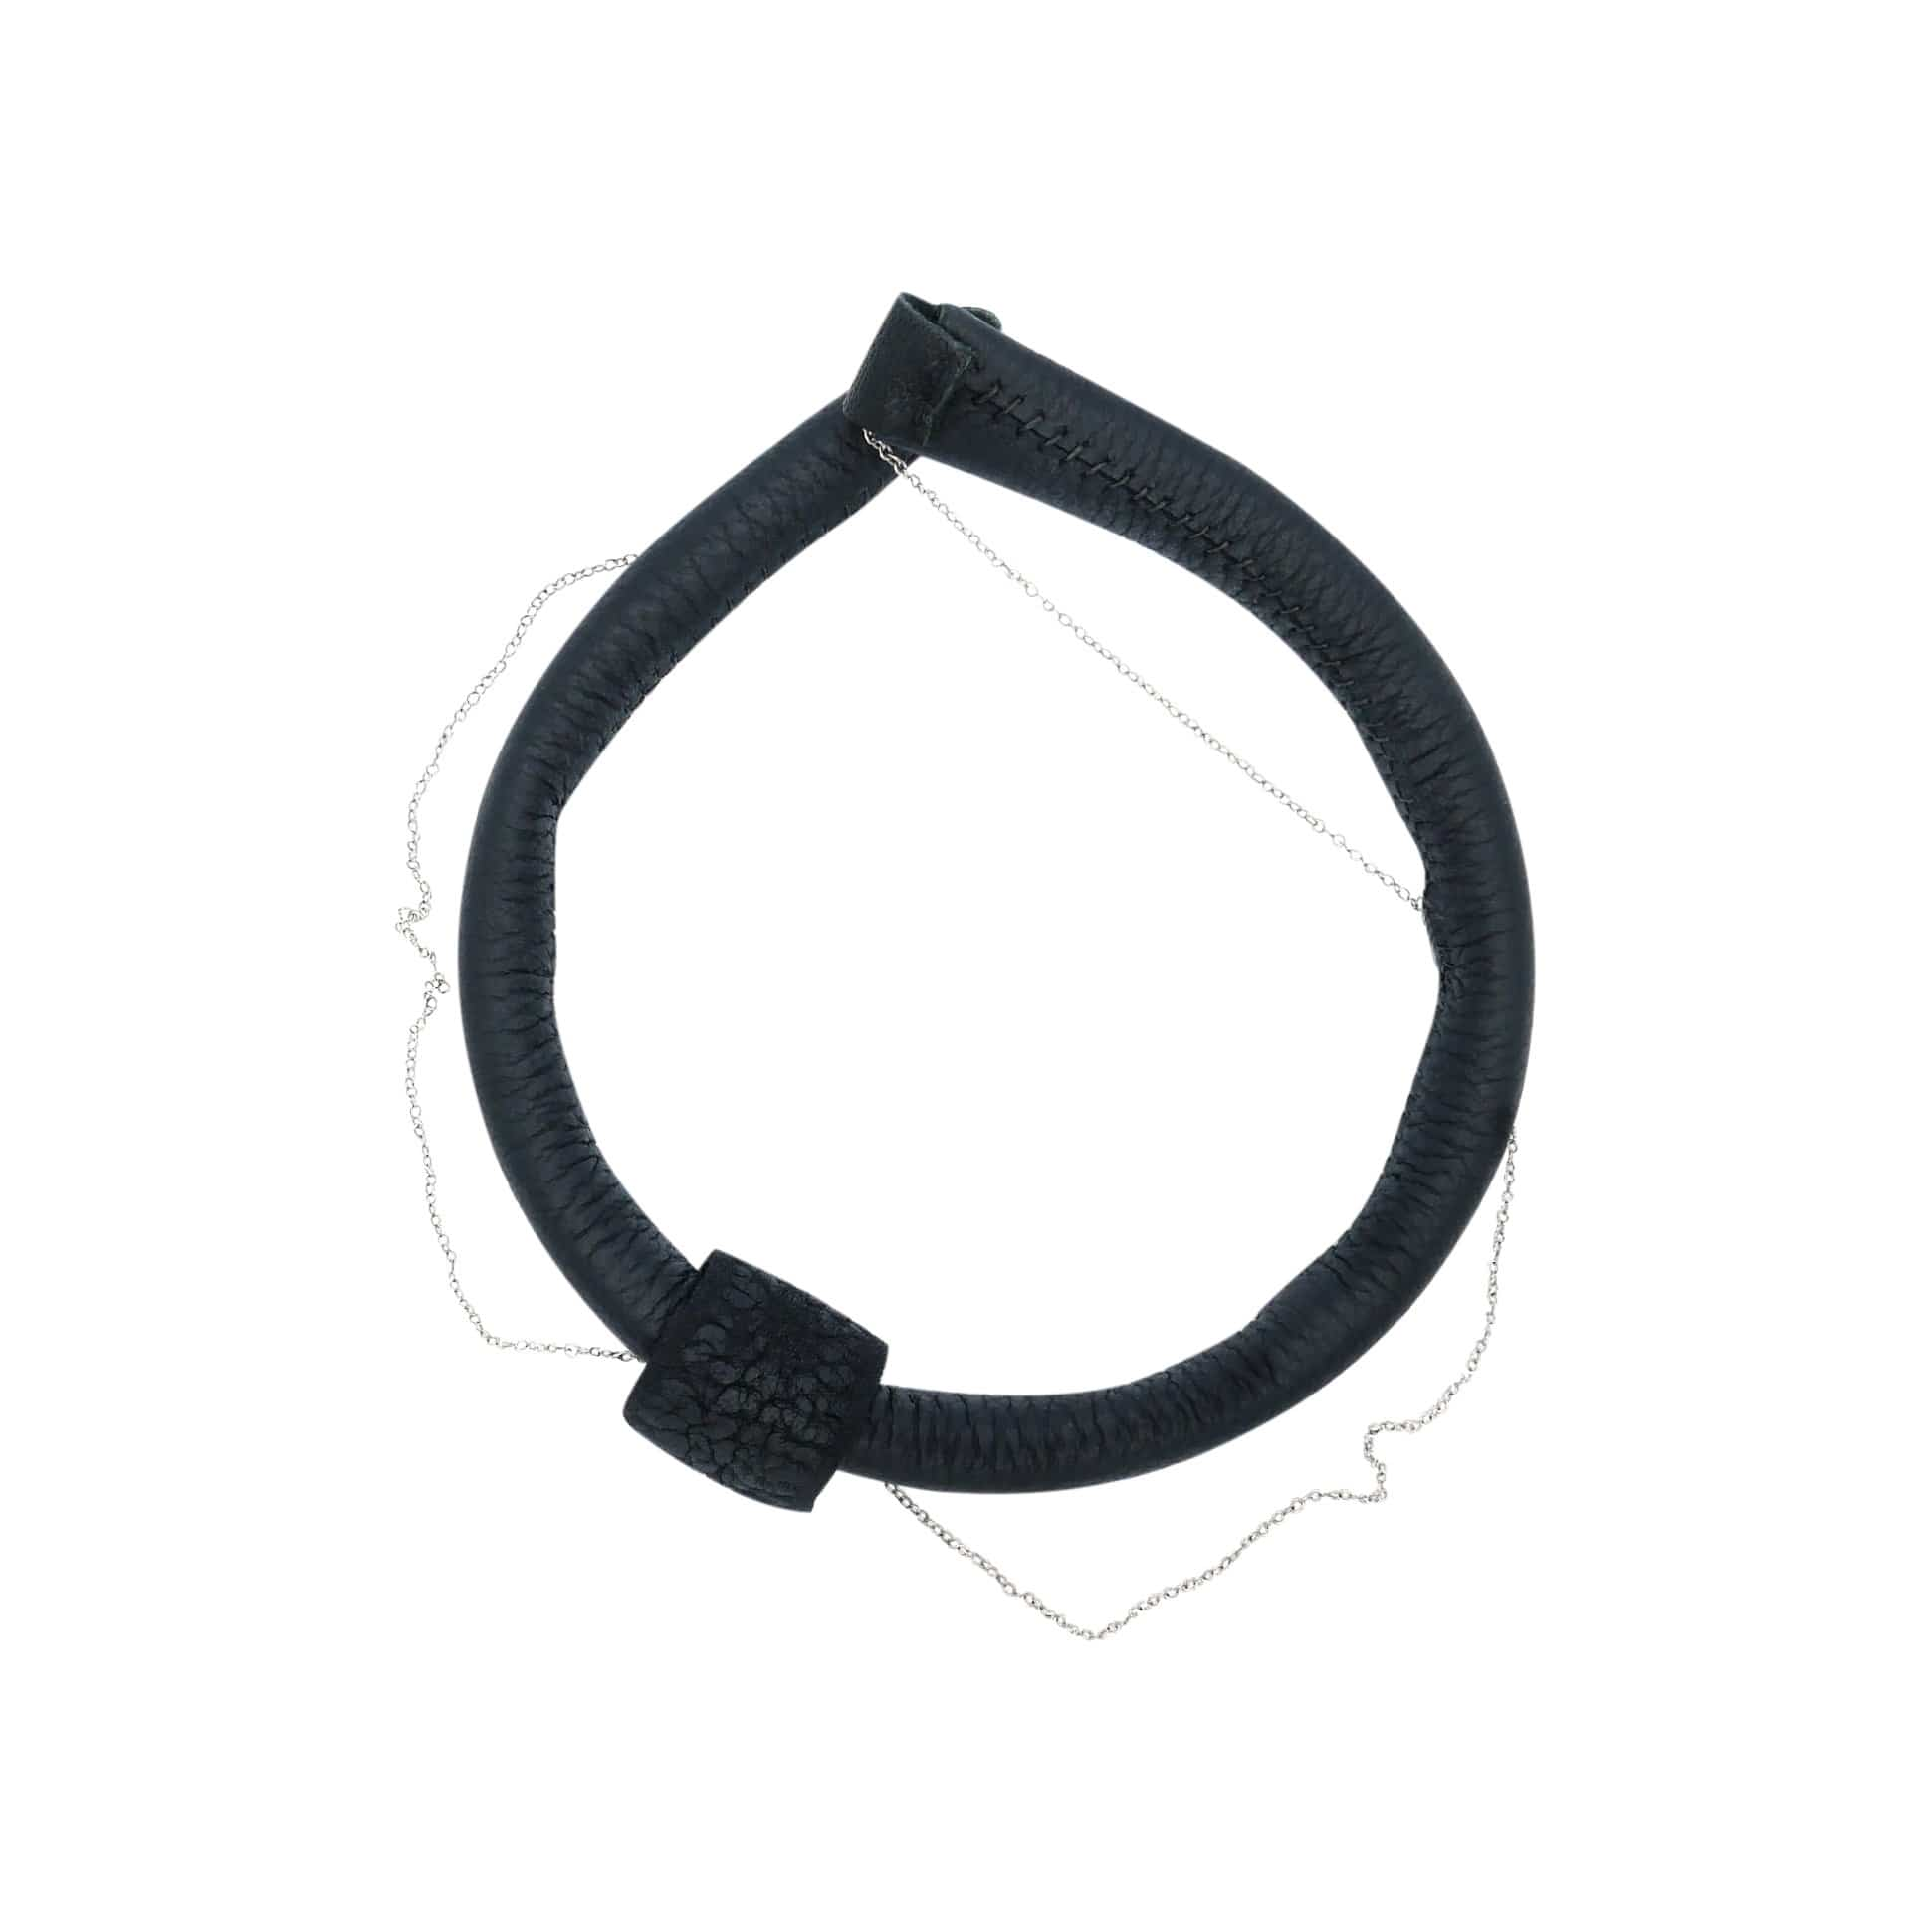 WAIWAI Necklaces C010 Leather Choker with Silver Chain